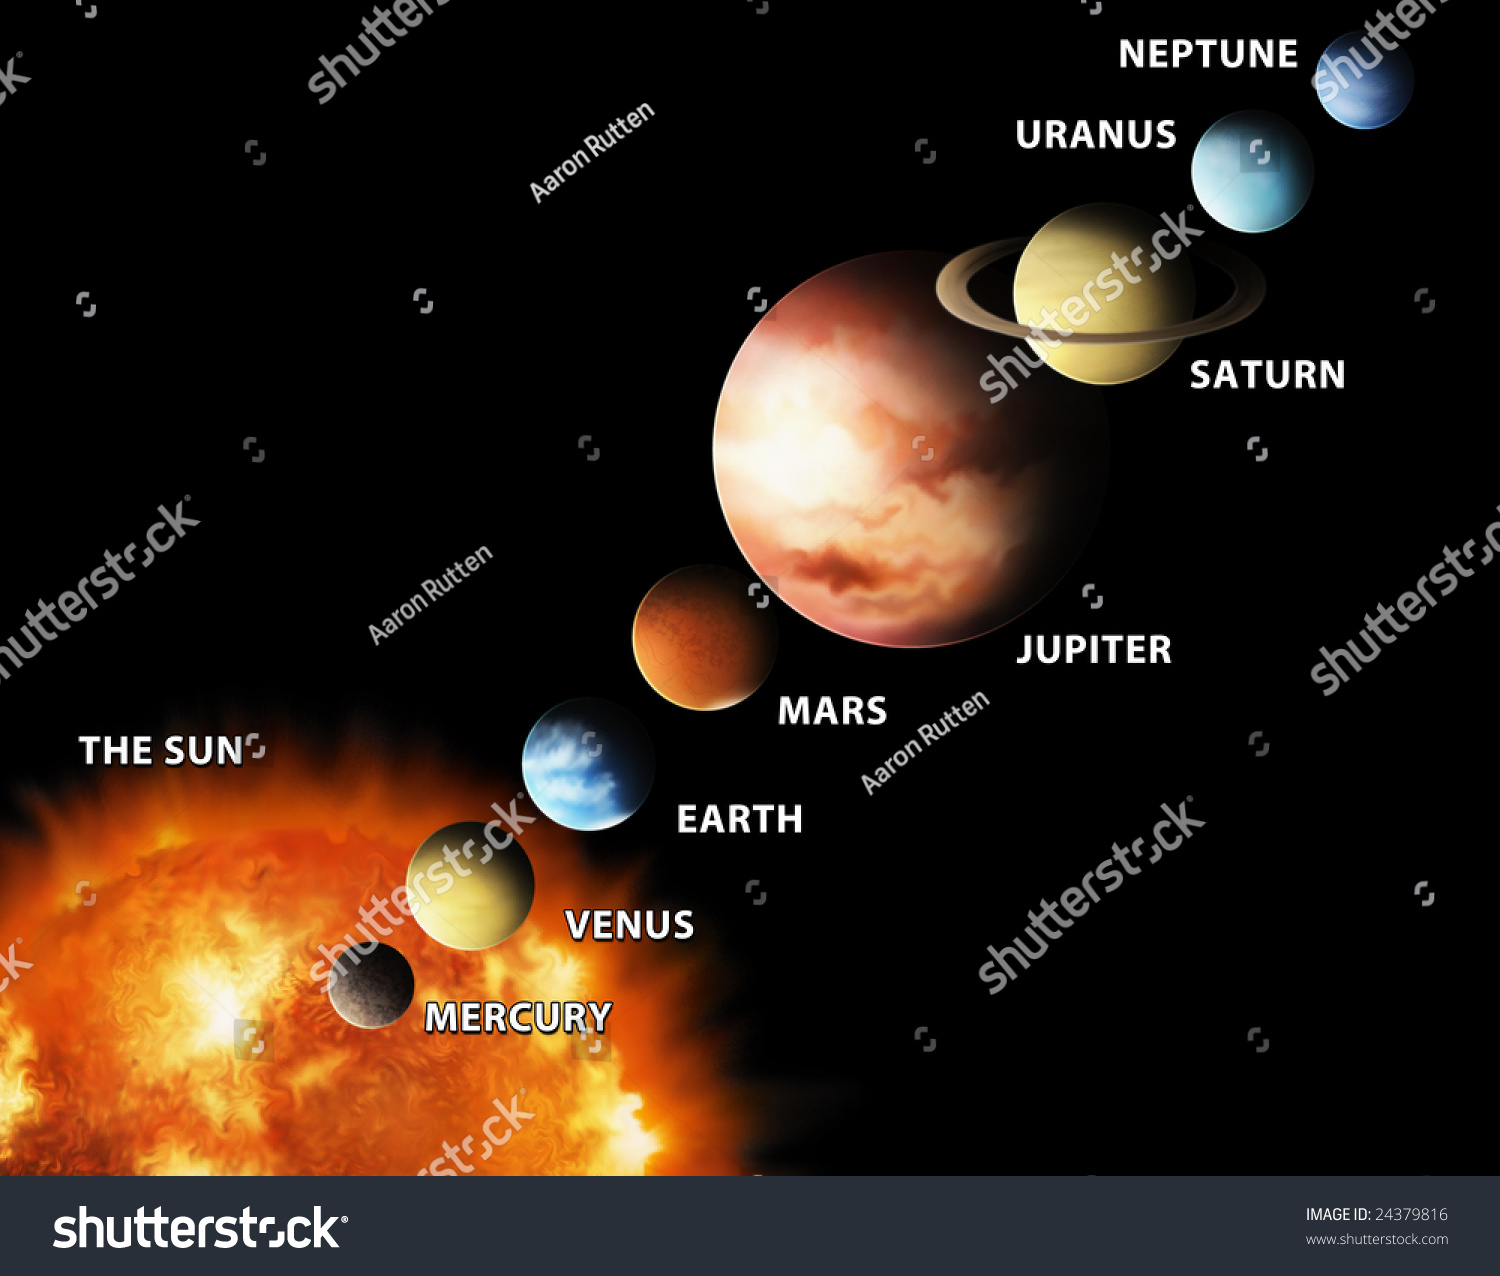 diagram of mercury planet drawing - photo #31